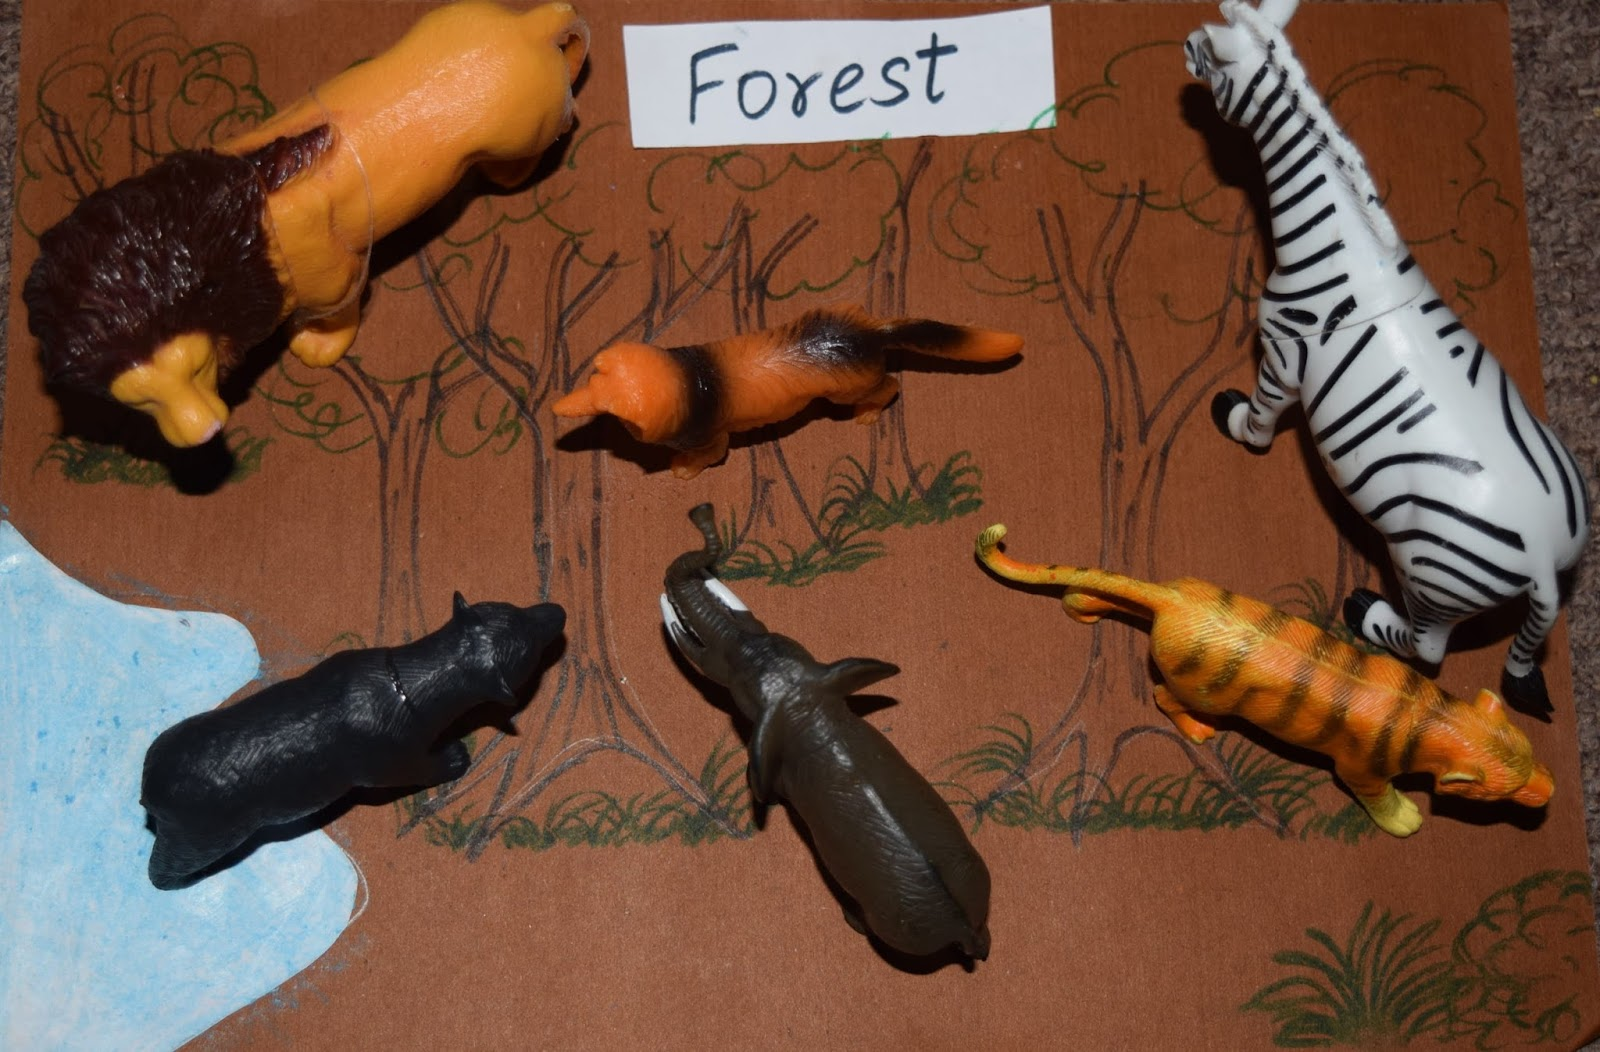 Sindhu's cocoon: Animals and Habitats - Sorting activity for Pre-Schoolers